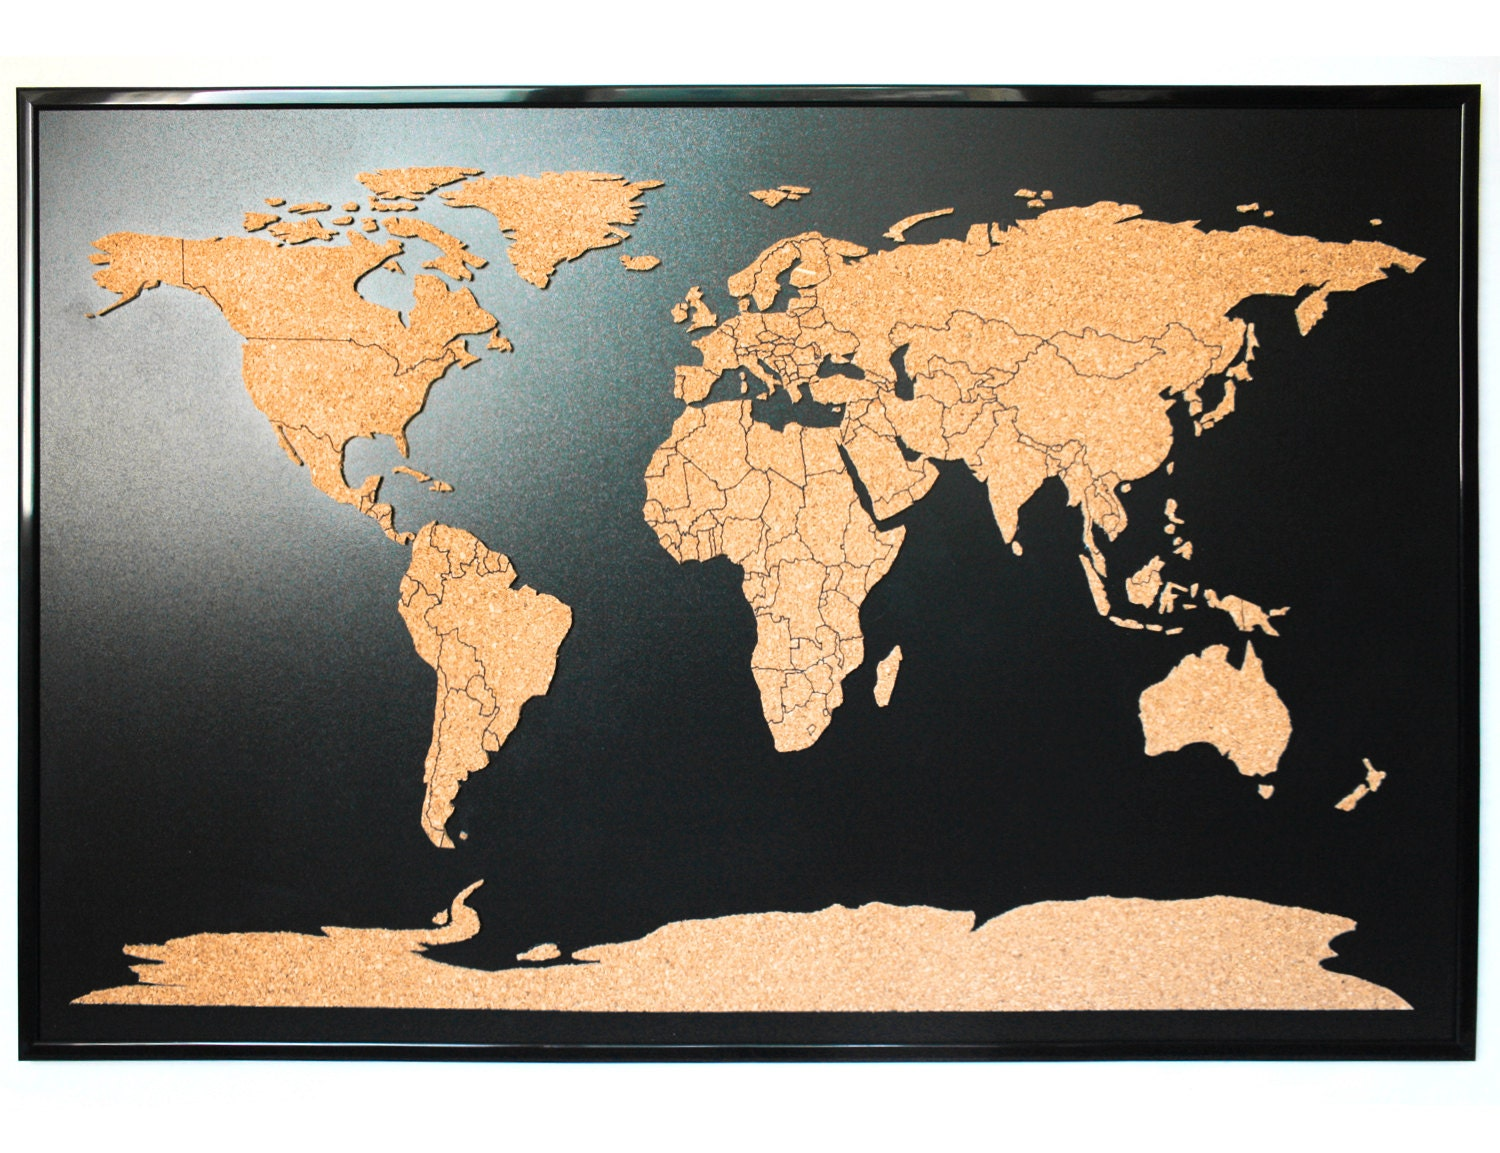 World map push pin corkboard with countries outlined Cork